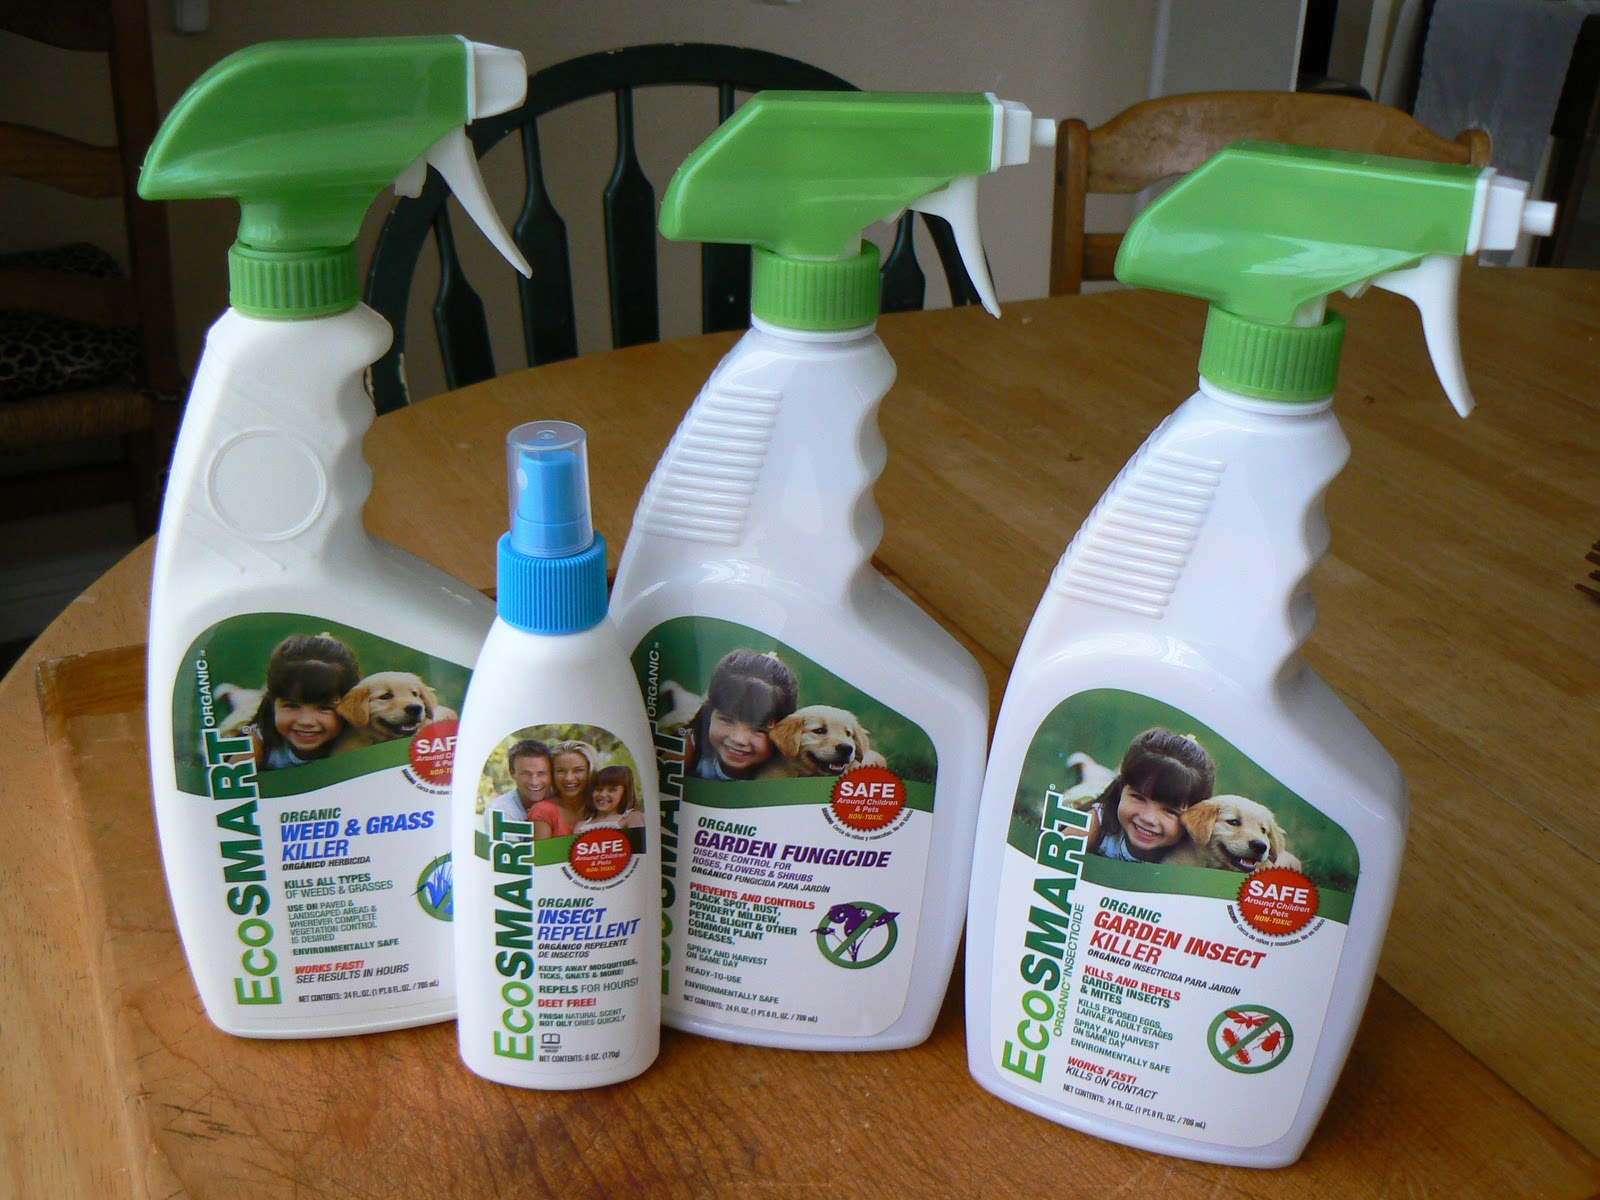 Mih Product Reviews Giveaways Ecosmart Safe Plant And Garden Care Review